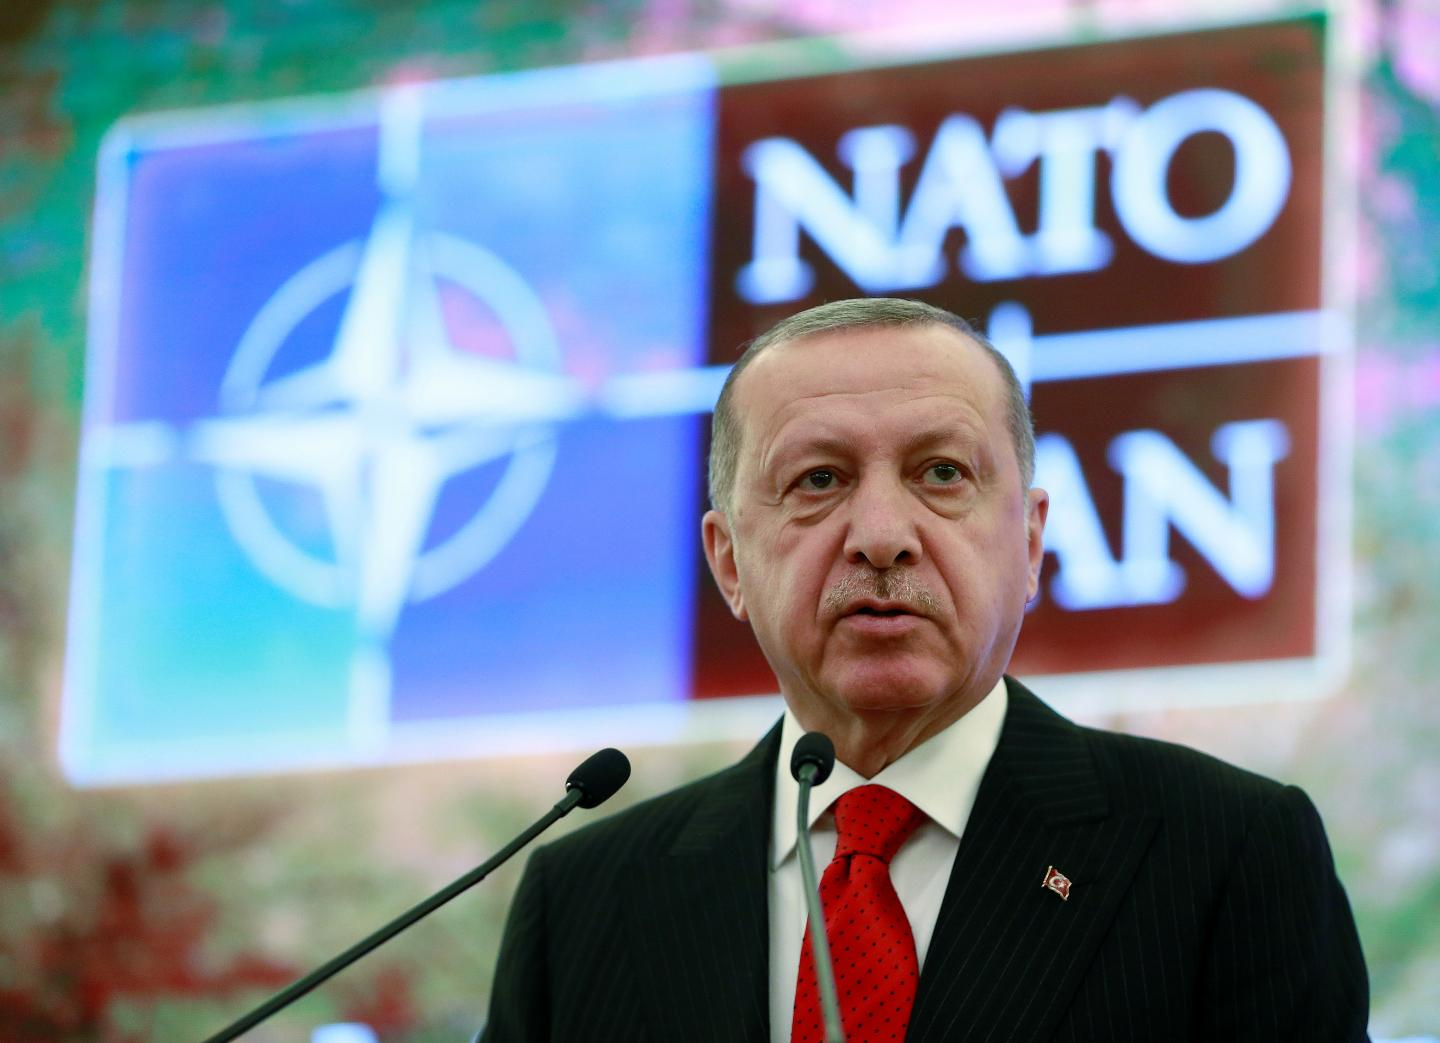 Could NATO expel Turkey? 7